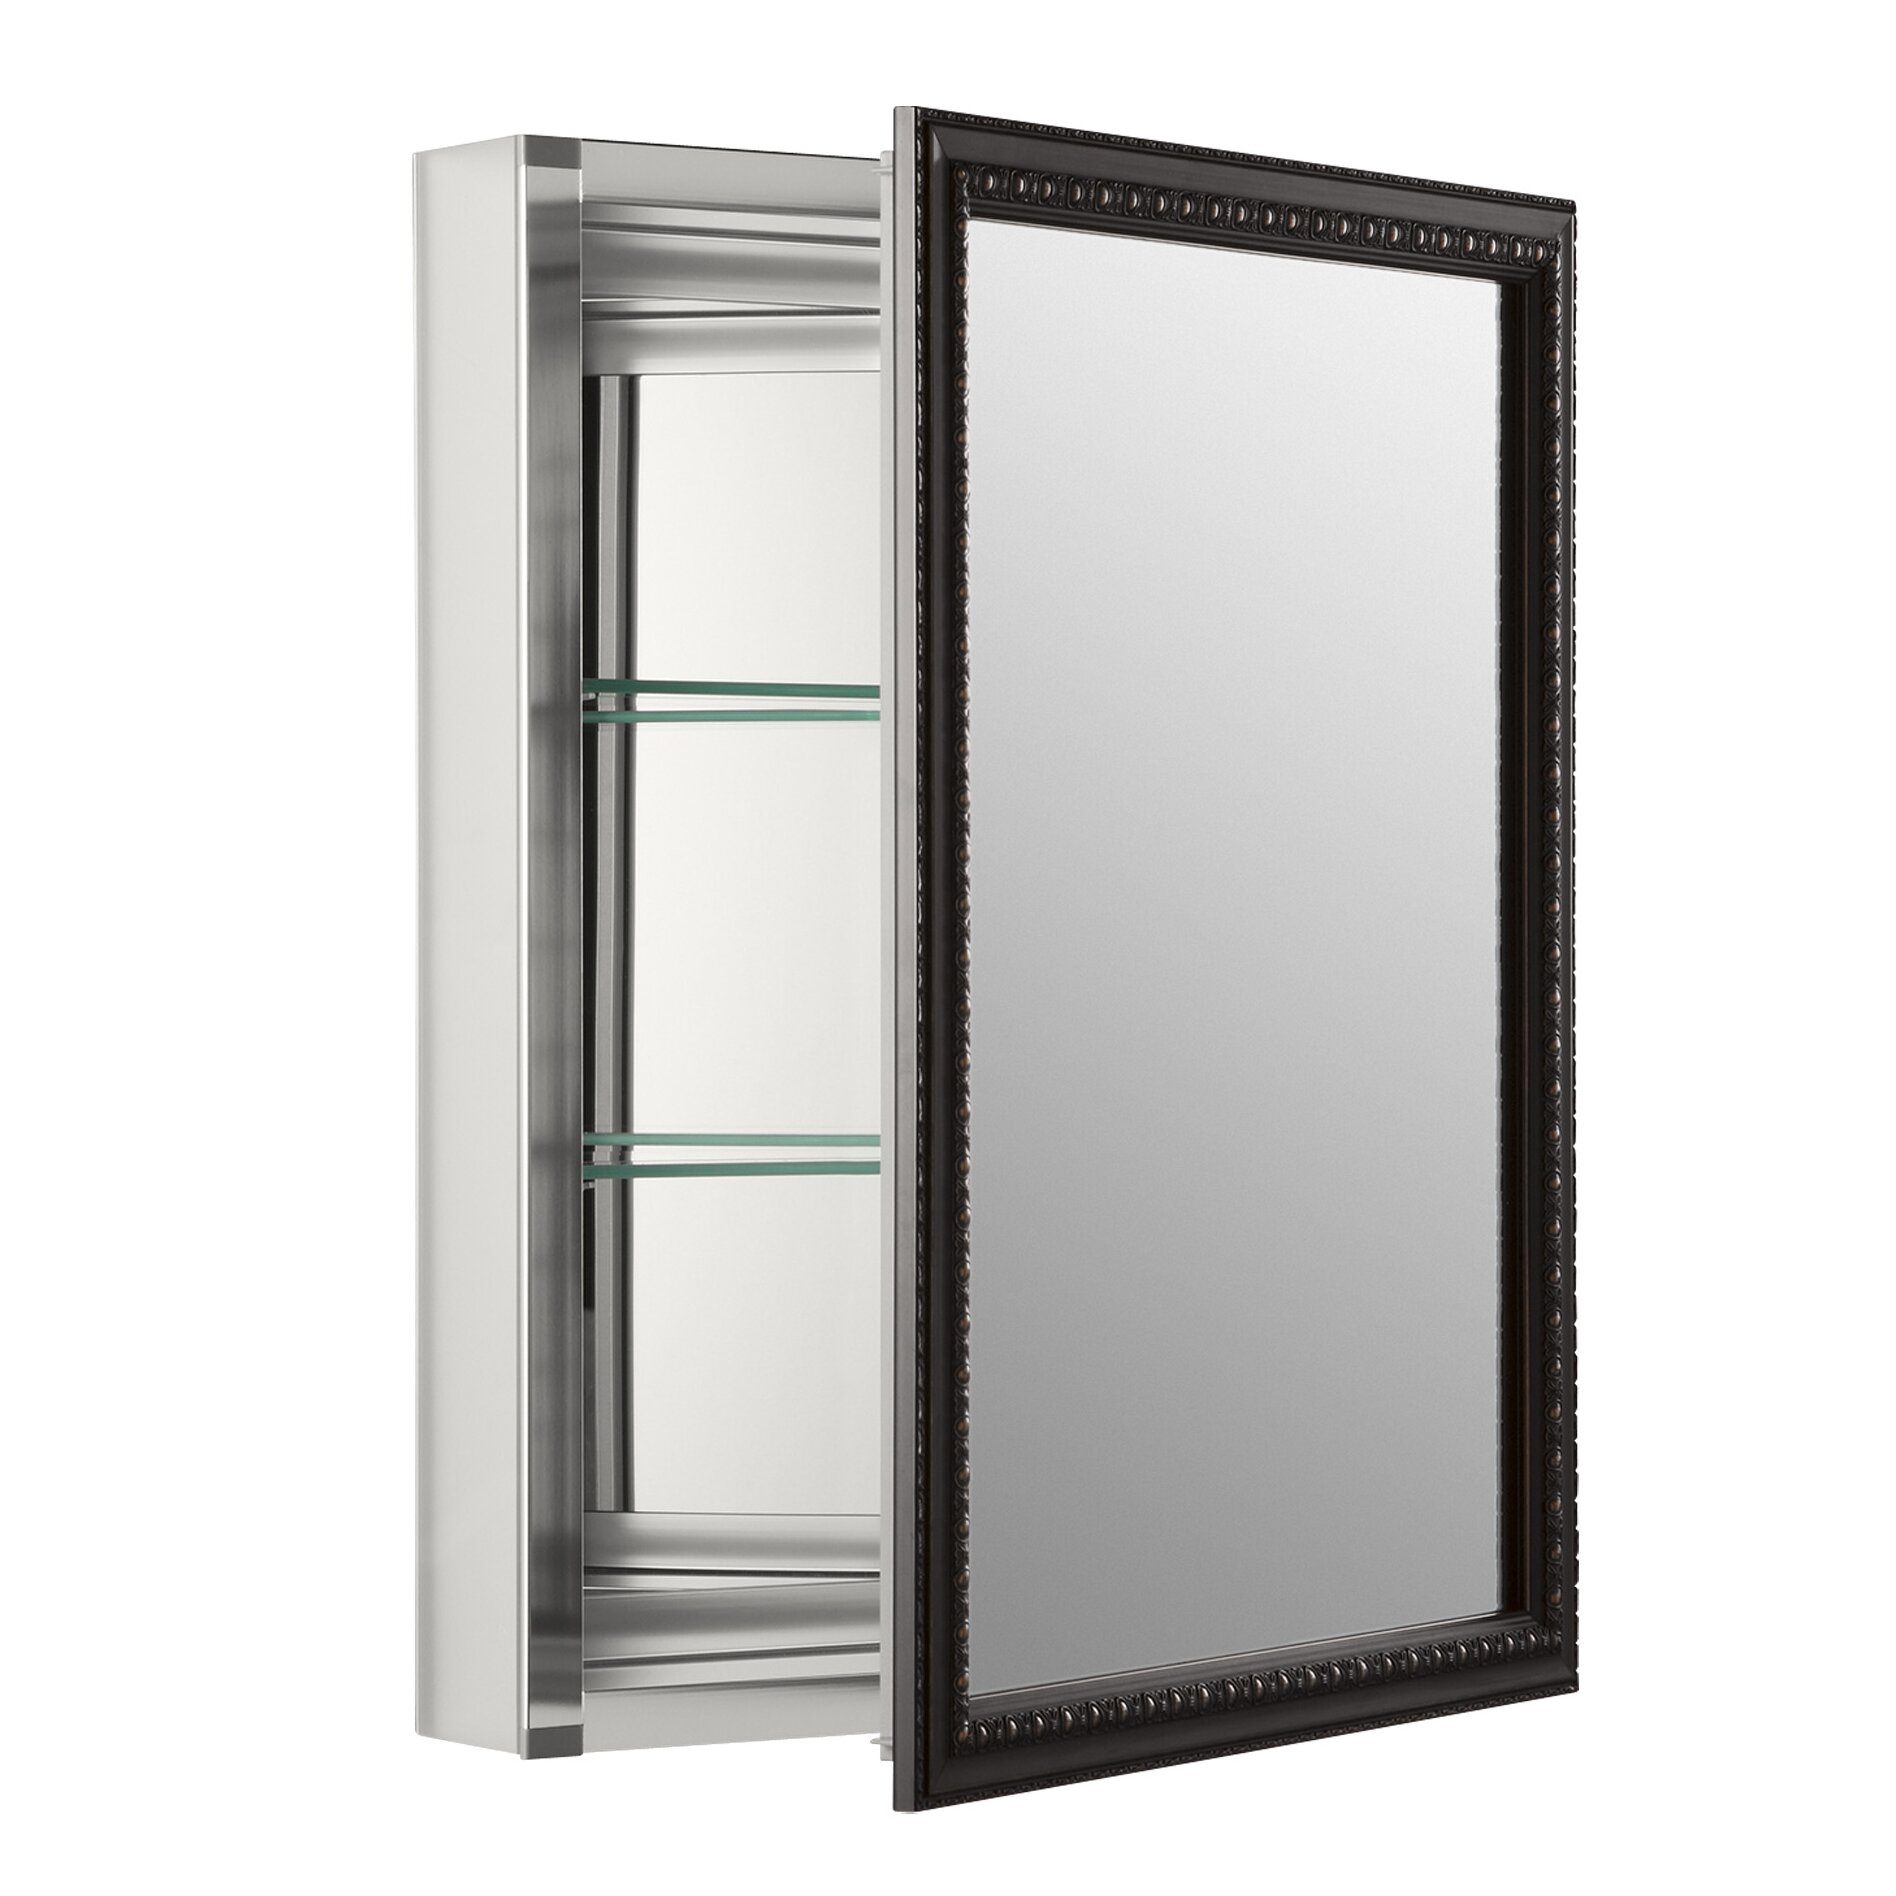 26 wall mount mirrored medicine cabinet with mirrored door by kohler